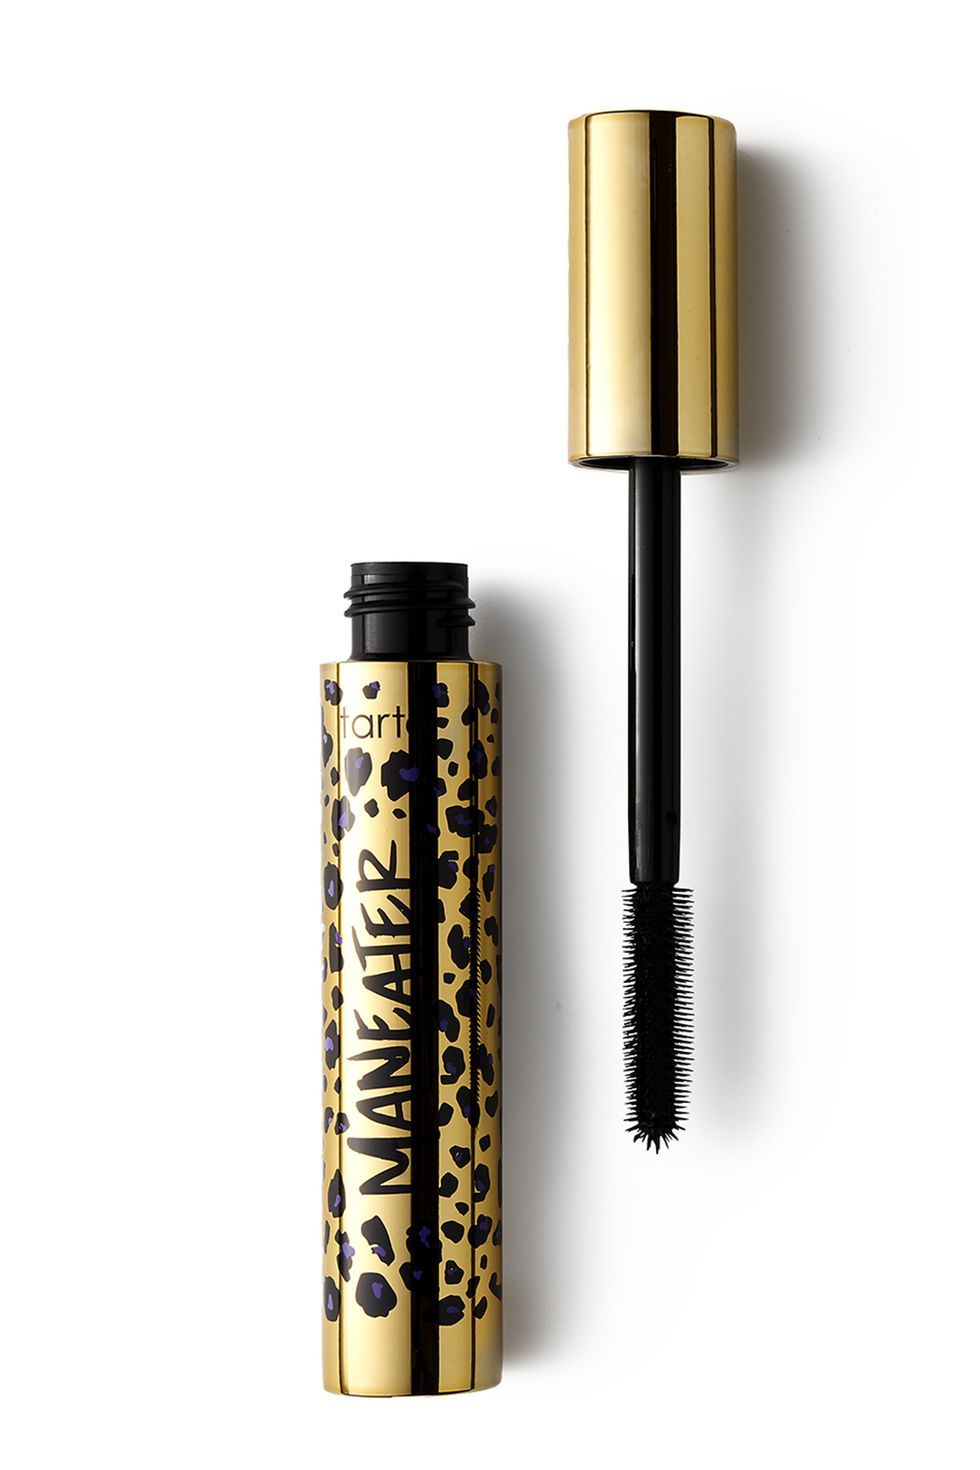 36392996ca2 20 Best Mascaras of 2018 - Top Mascara Brands to Lengthen and Volumize  Lashes